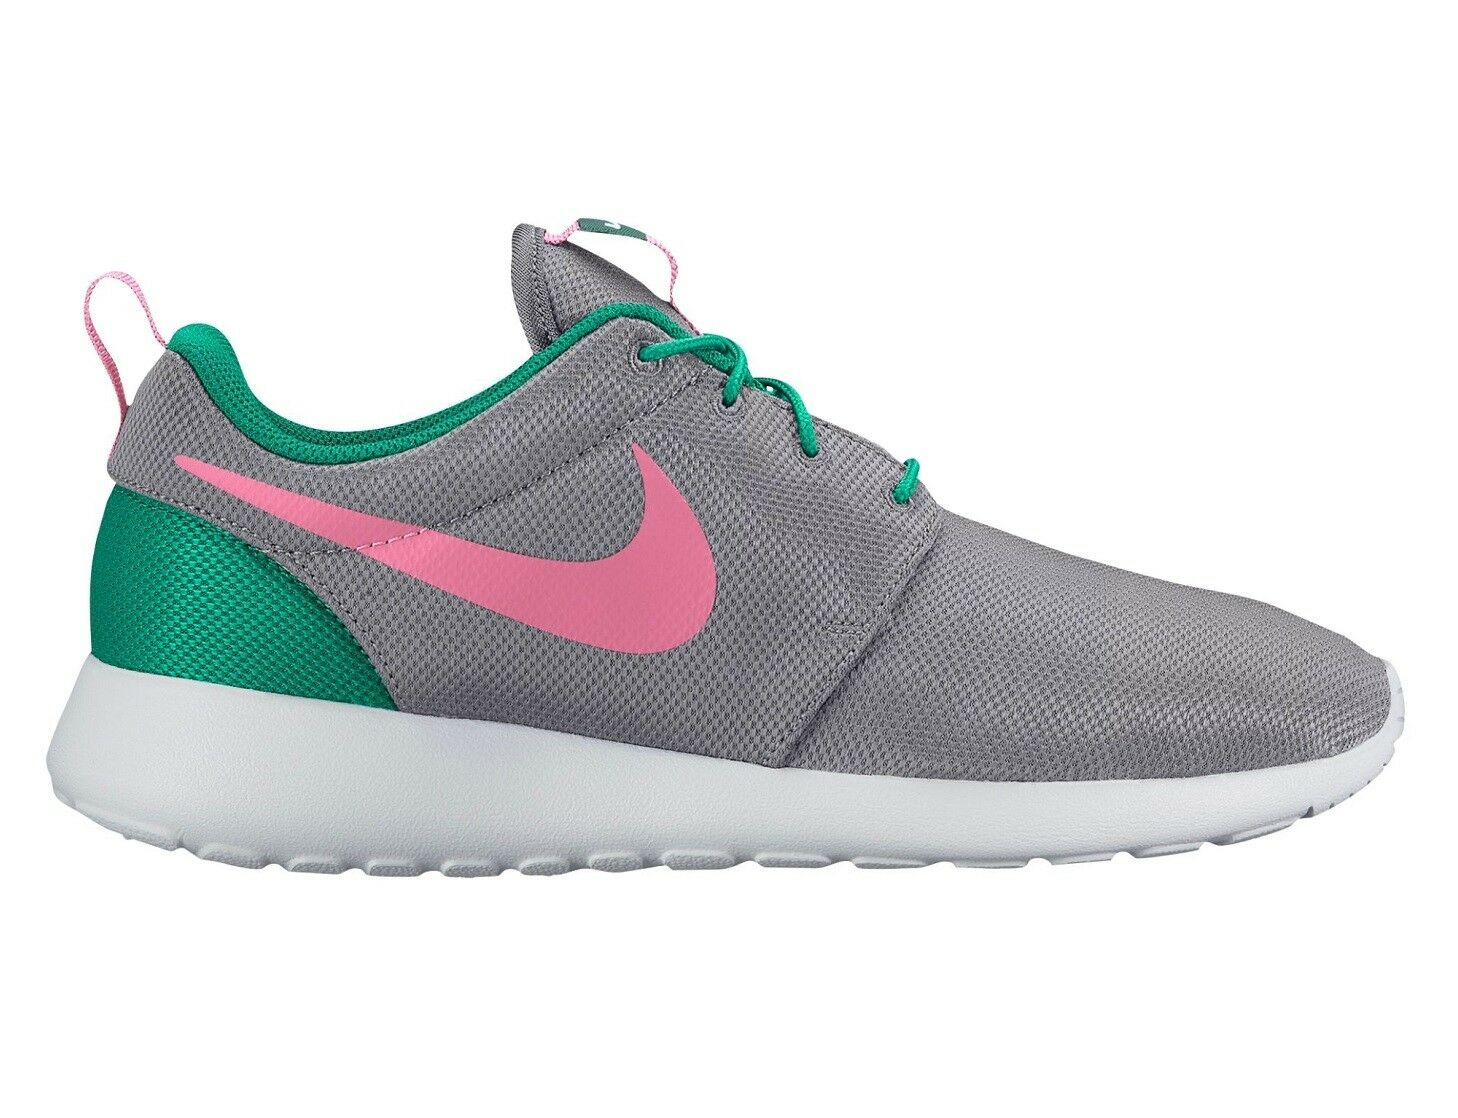 Nike Roshe One Watermelon Mens 511881-036 Grey Green Running shoes Size 13